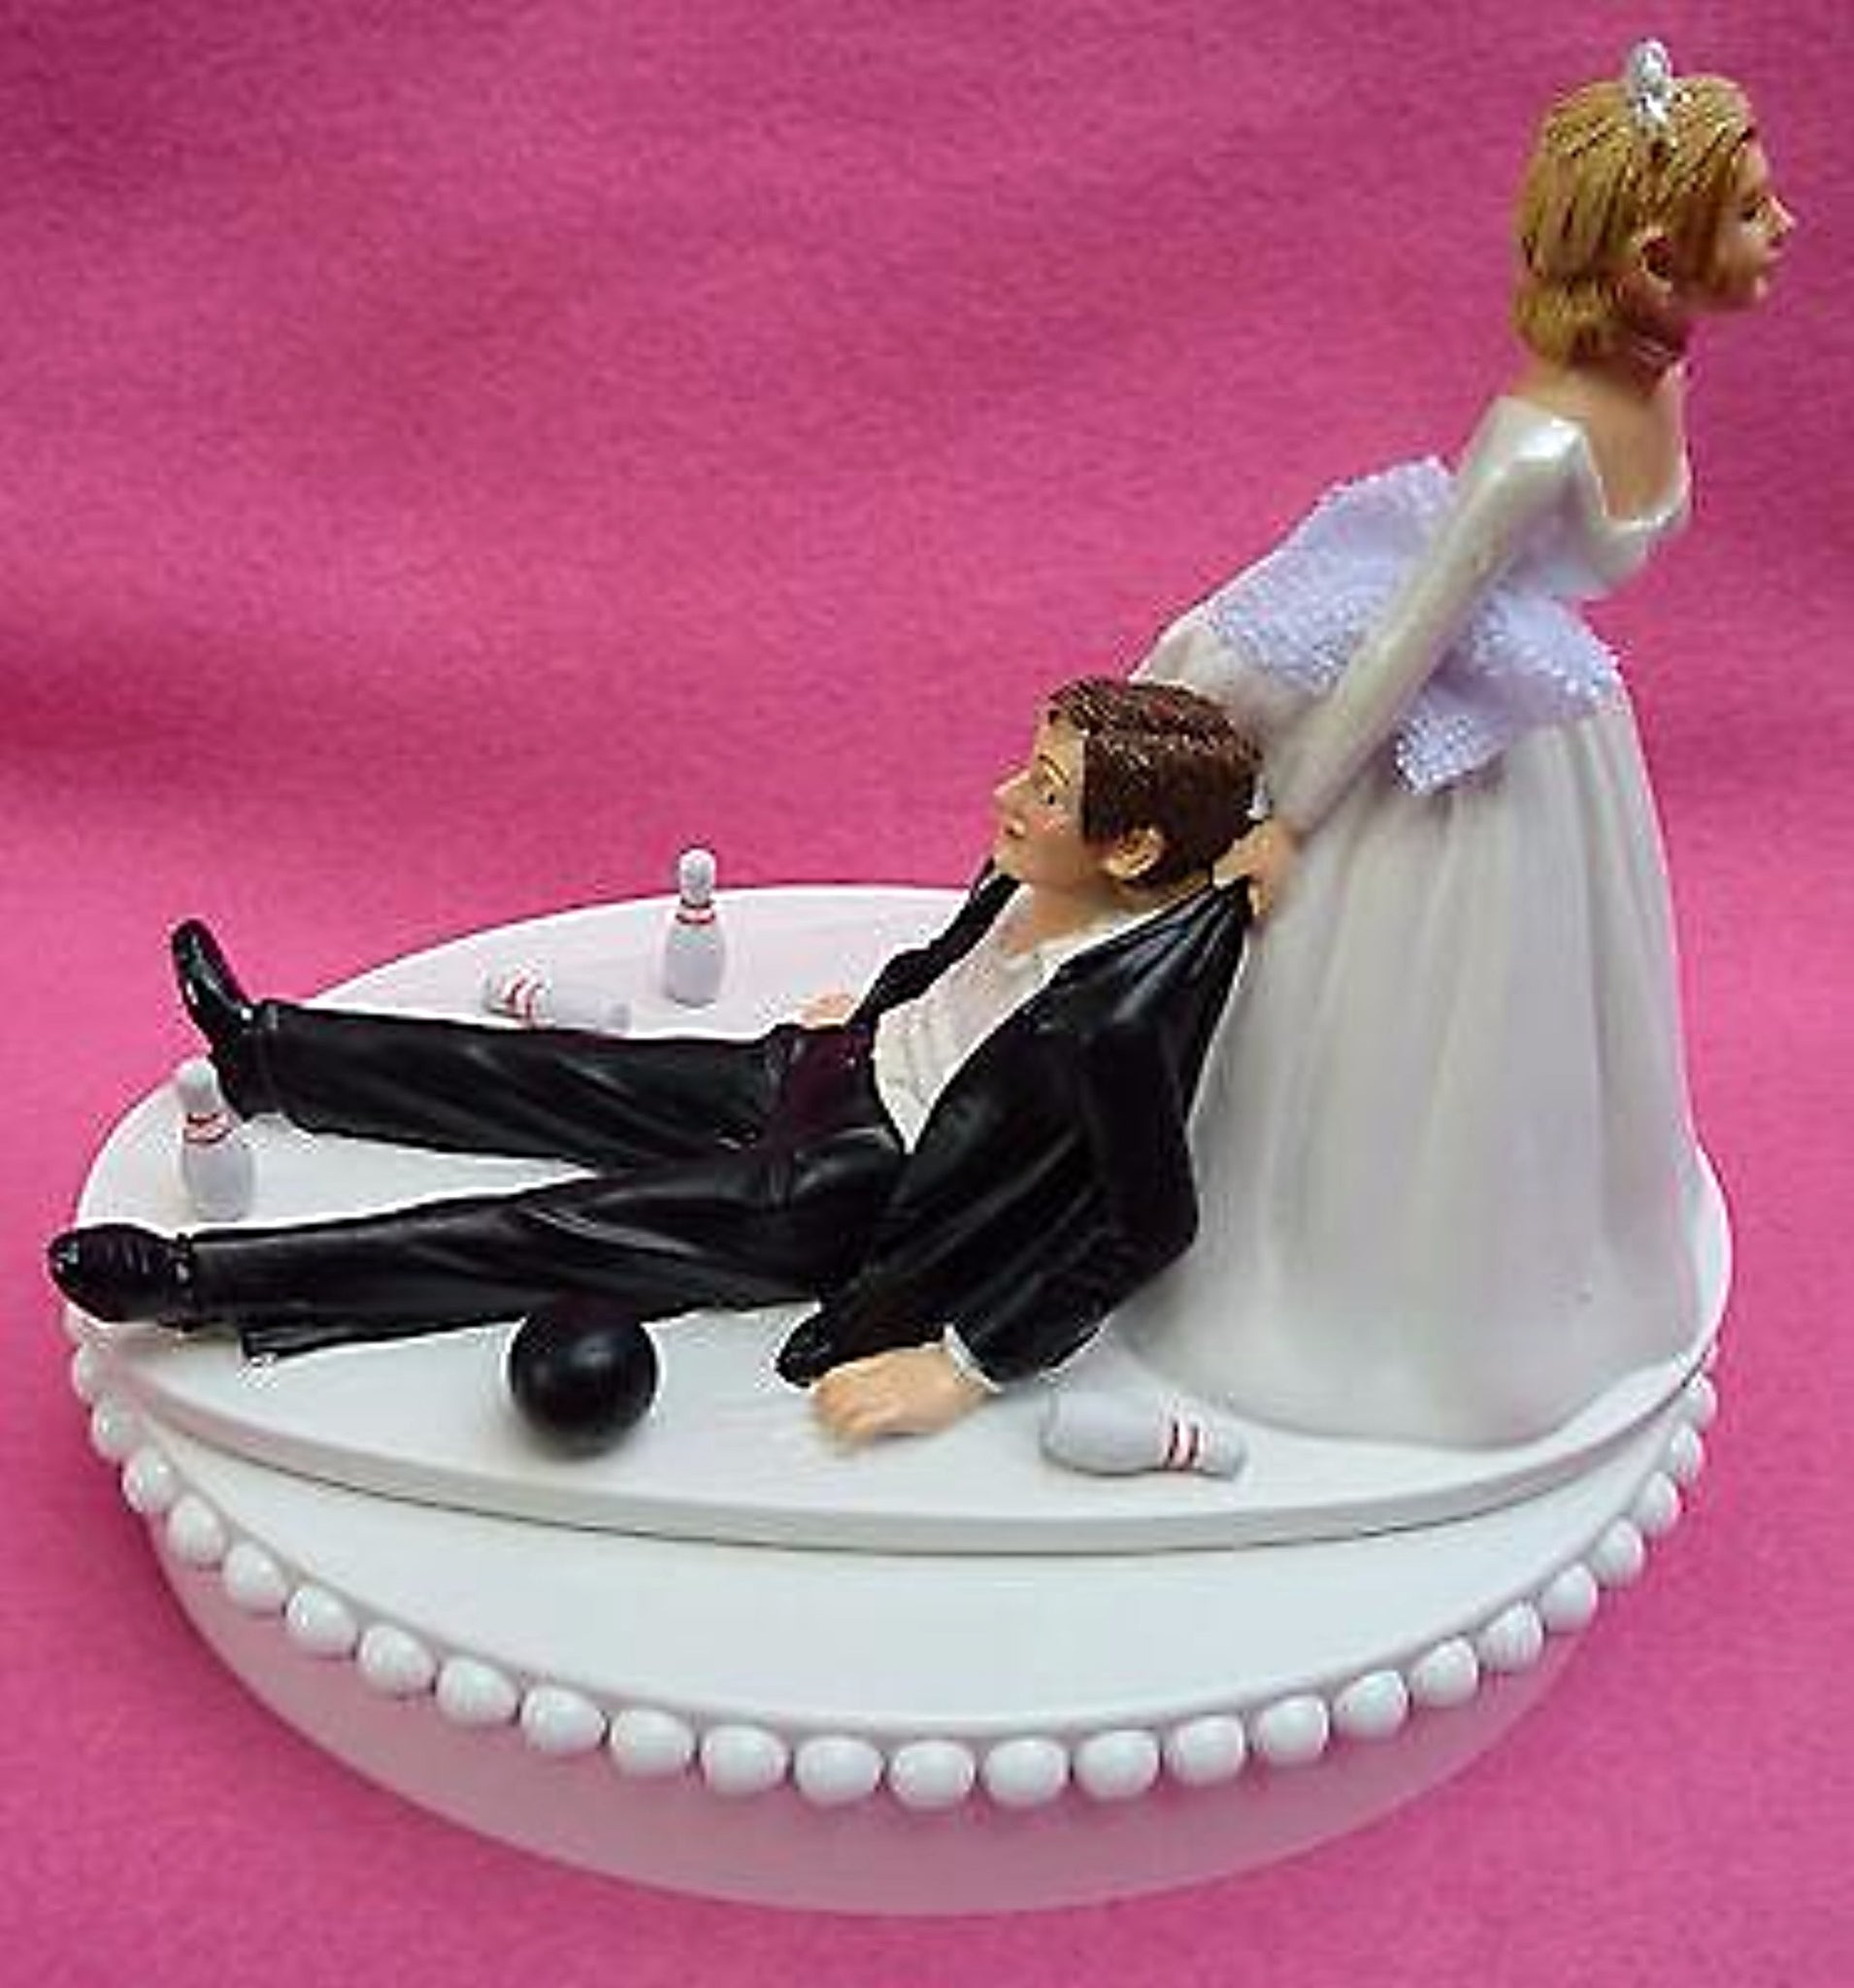 Bowling wedding cake topper FunWeddingThings.com bowler ball pins towel sports fans fun hobby bride dragging groom funny humorous reception gift